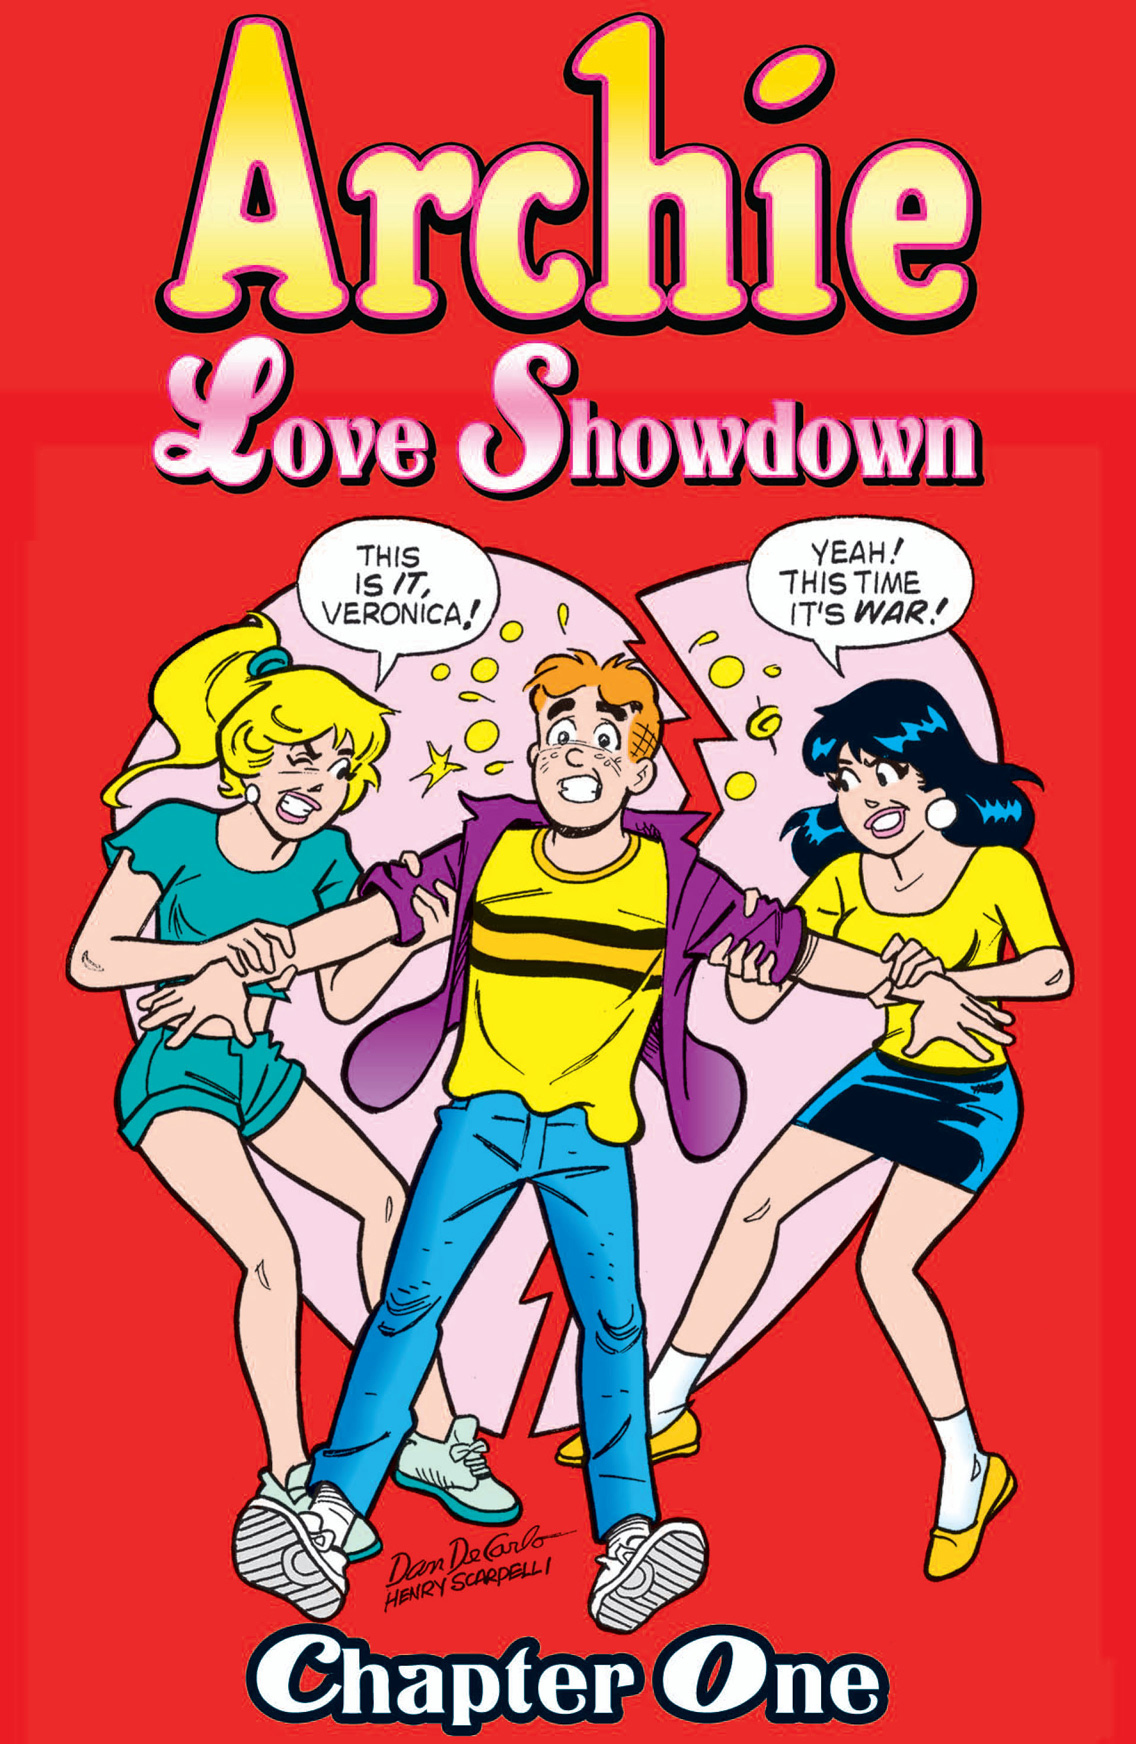 Archie Love Showdown #1